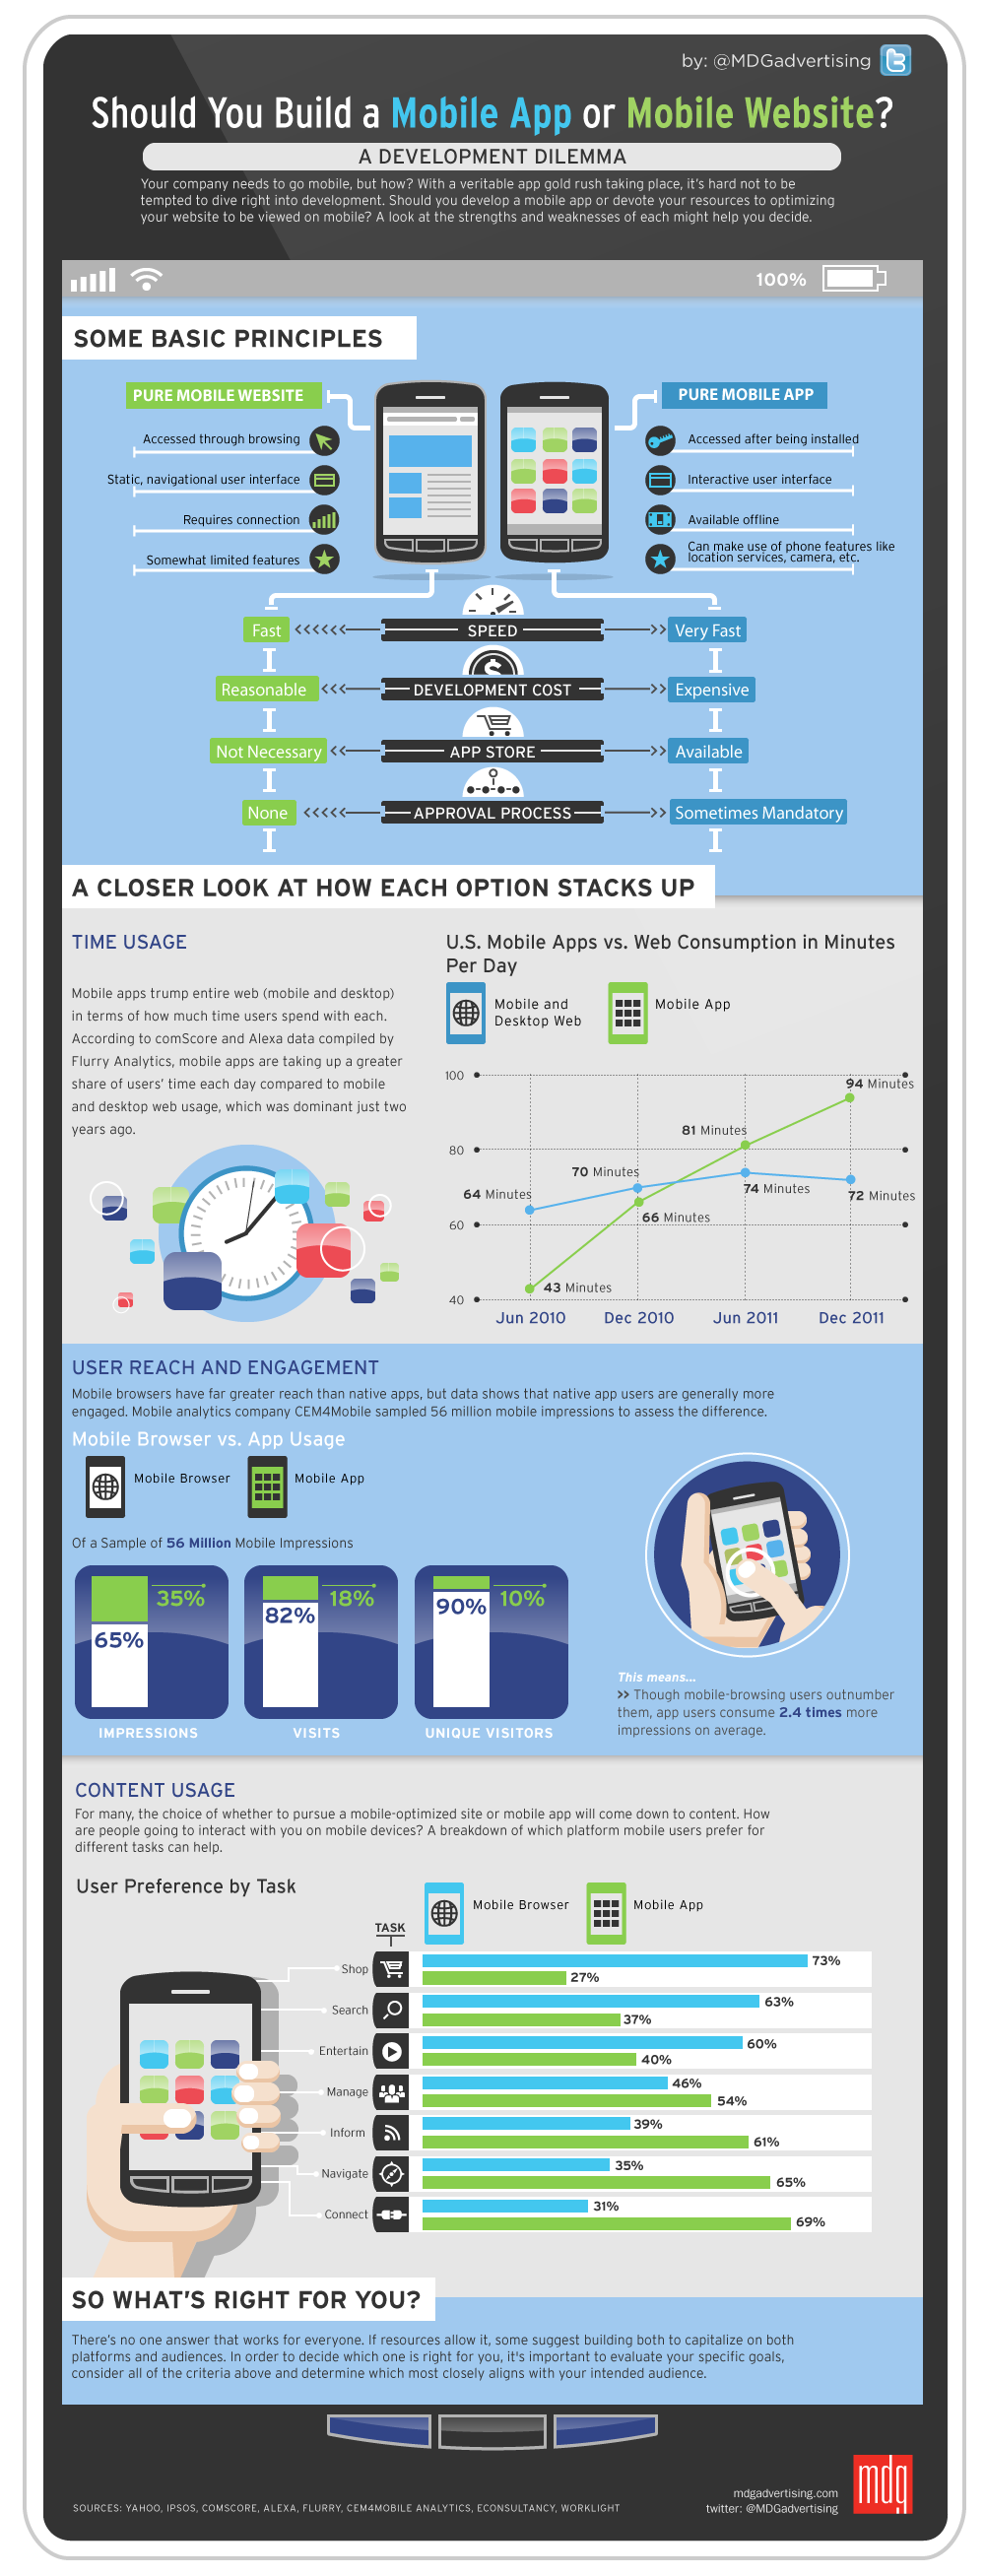 good build app from website #1: Should You Build a Mobile App or Mobile Website? [Infographic]